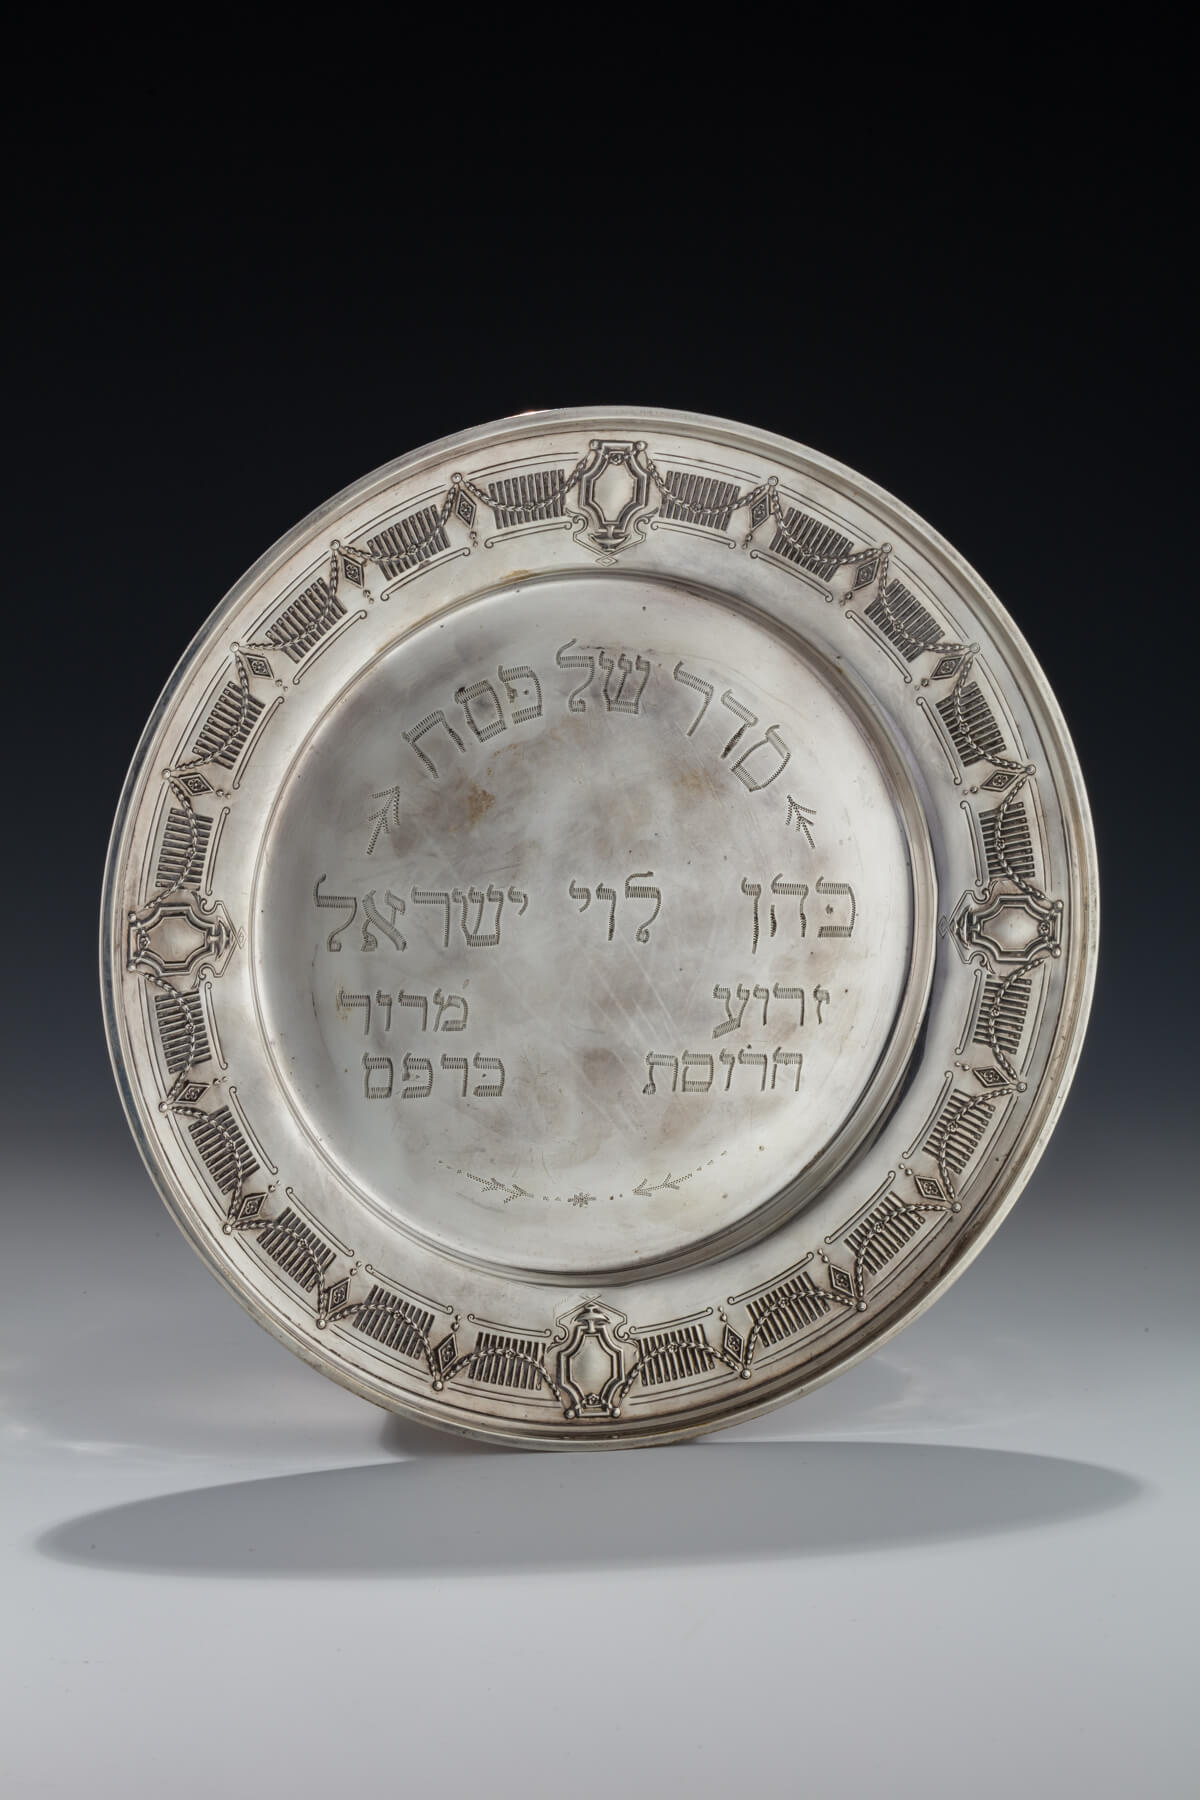 030. A Sterling Silver Seder Tray by Whiting